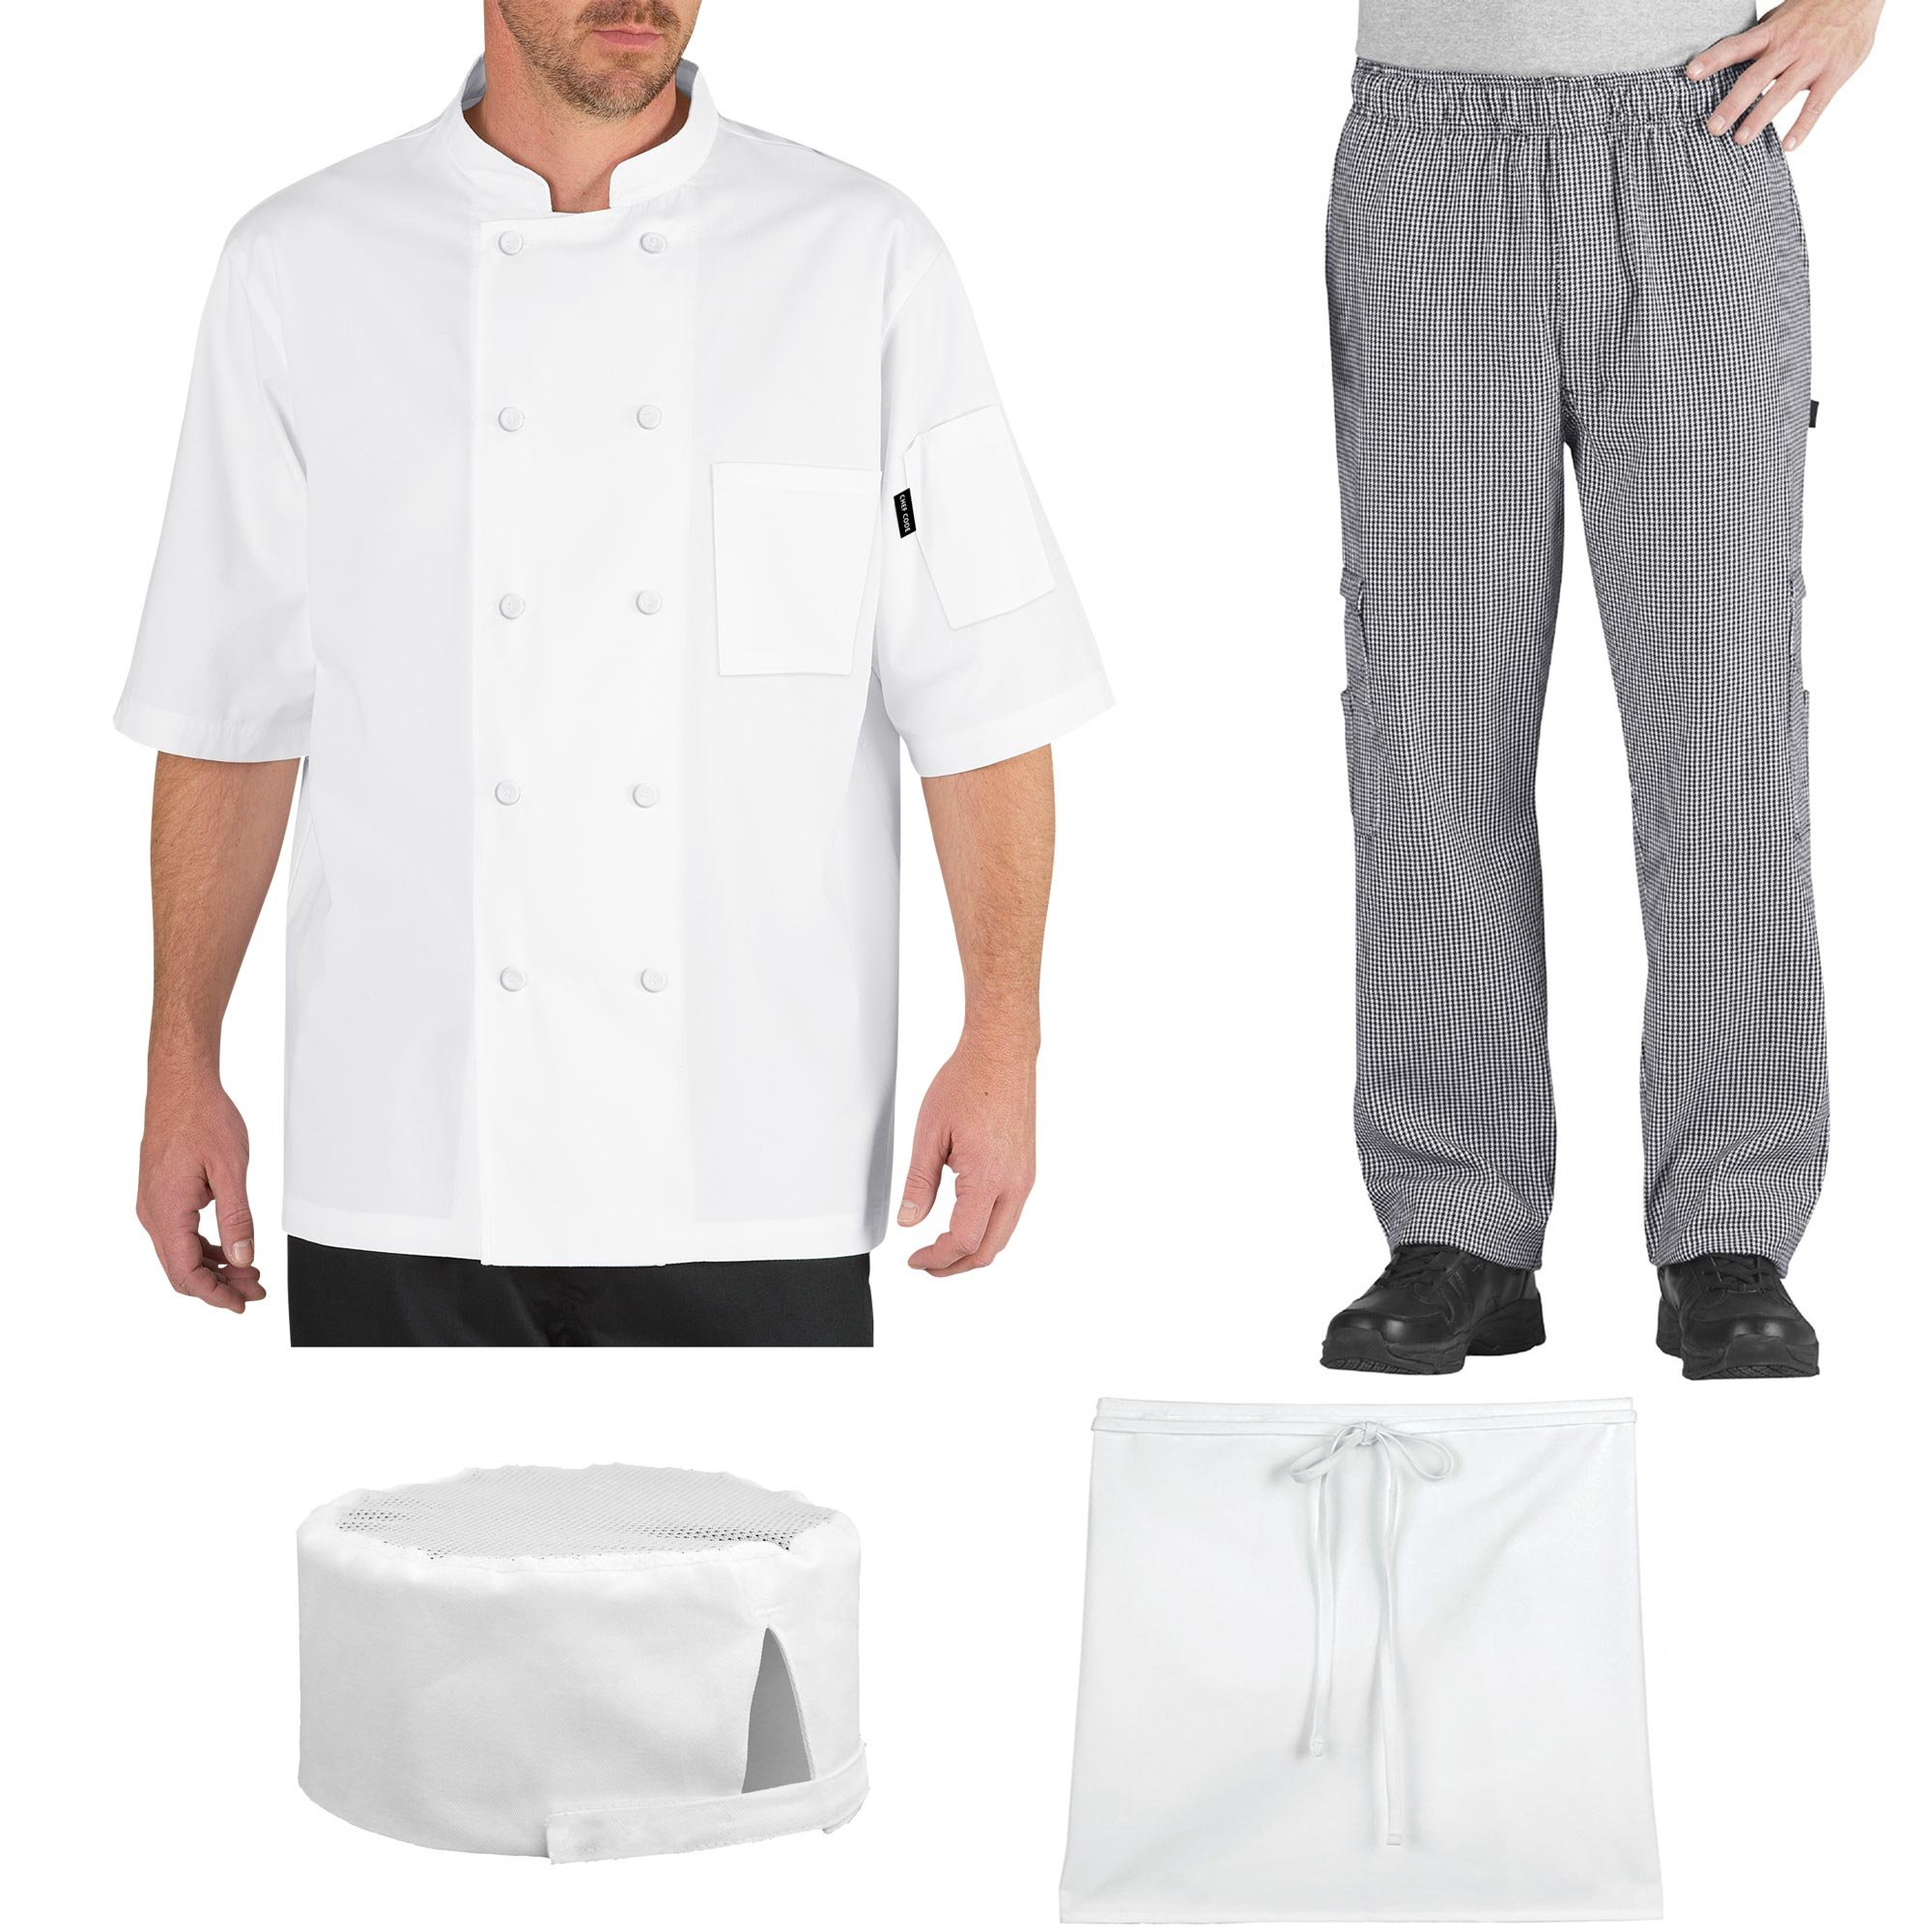 Chef Code Student Chef Bundle Pack Includes Chef Coat, Pants, Hat & Apron by Chef Code